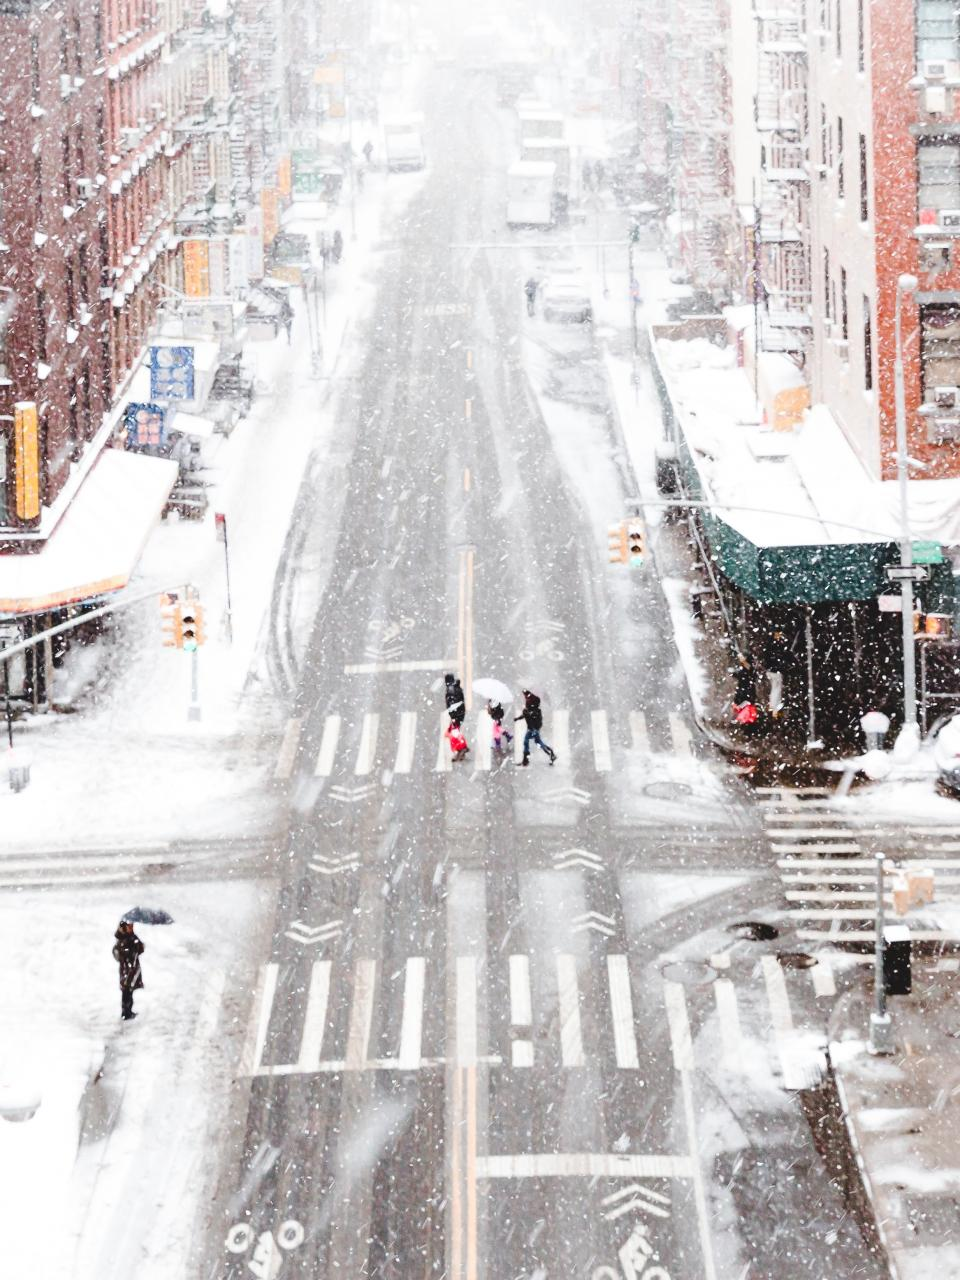 snow city urban people pedestrian lane signs street buildings architecture infrastructure children snowing traffic light intersection